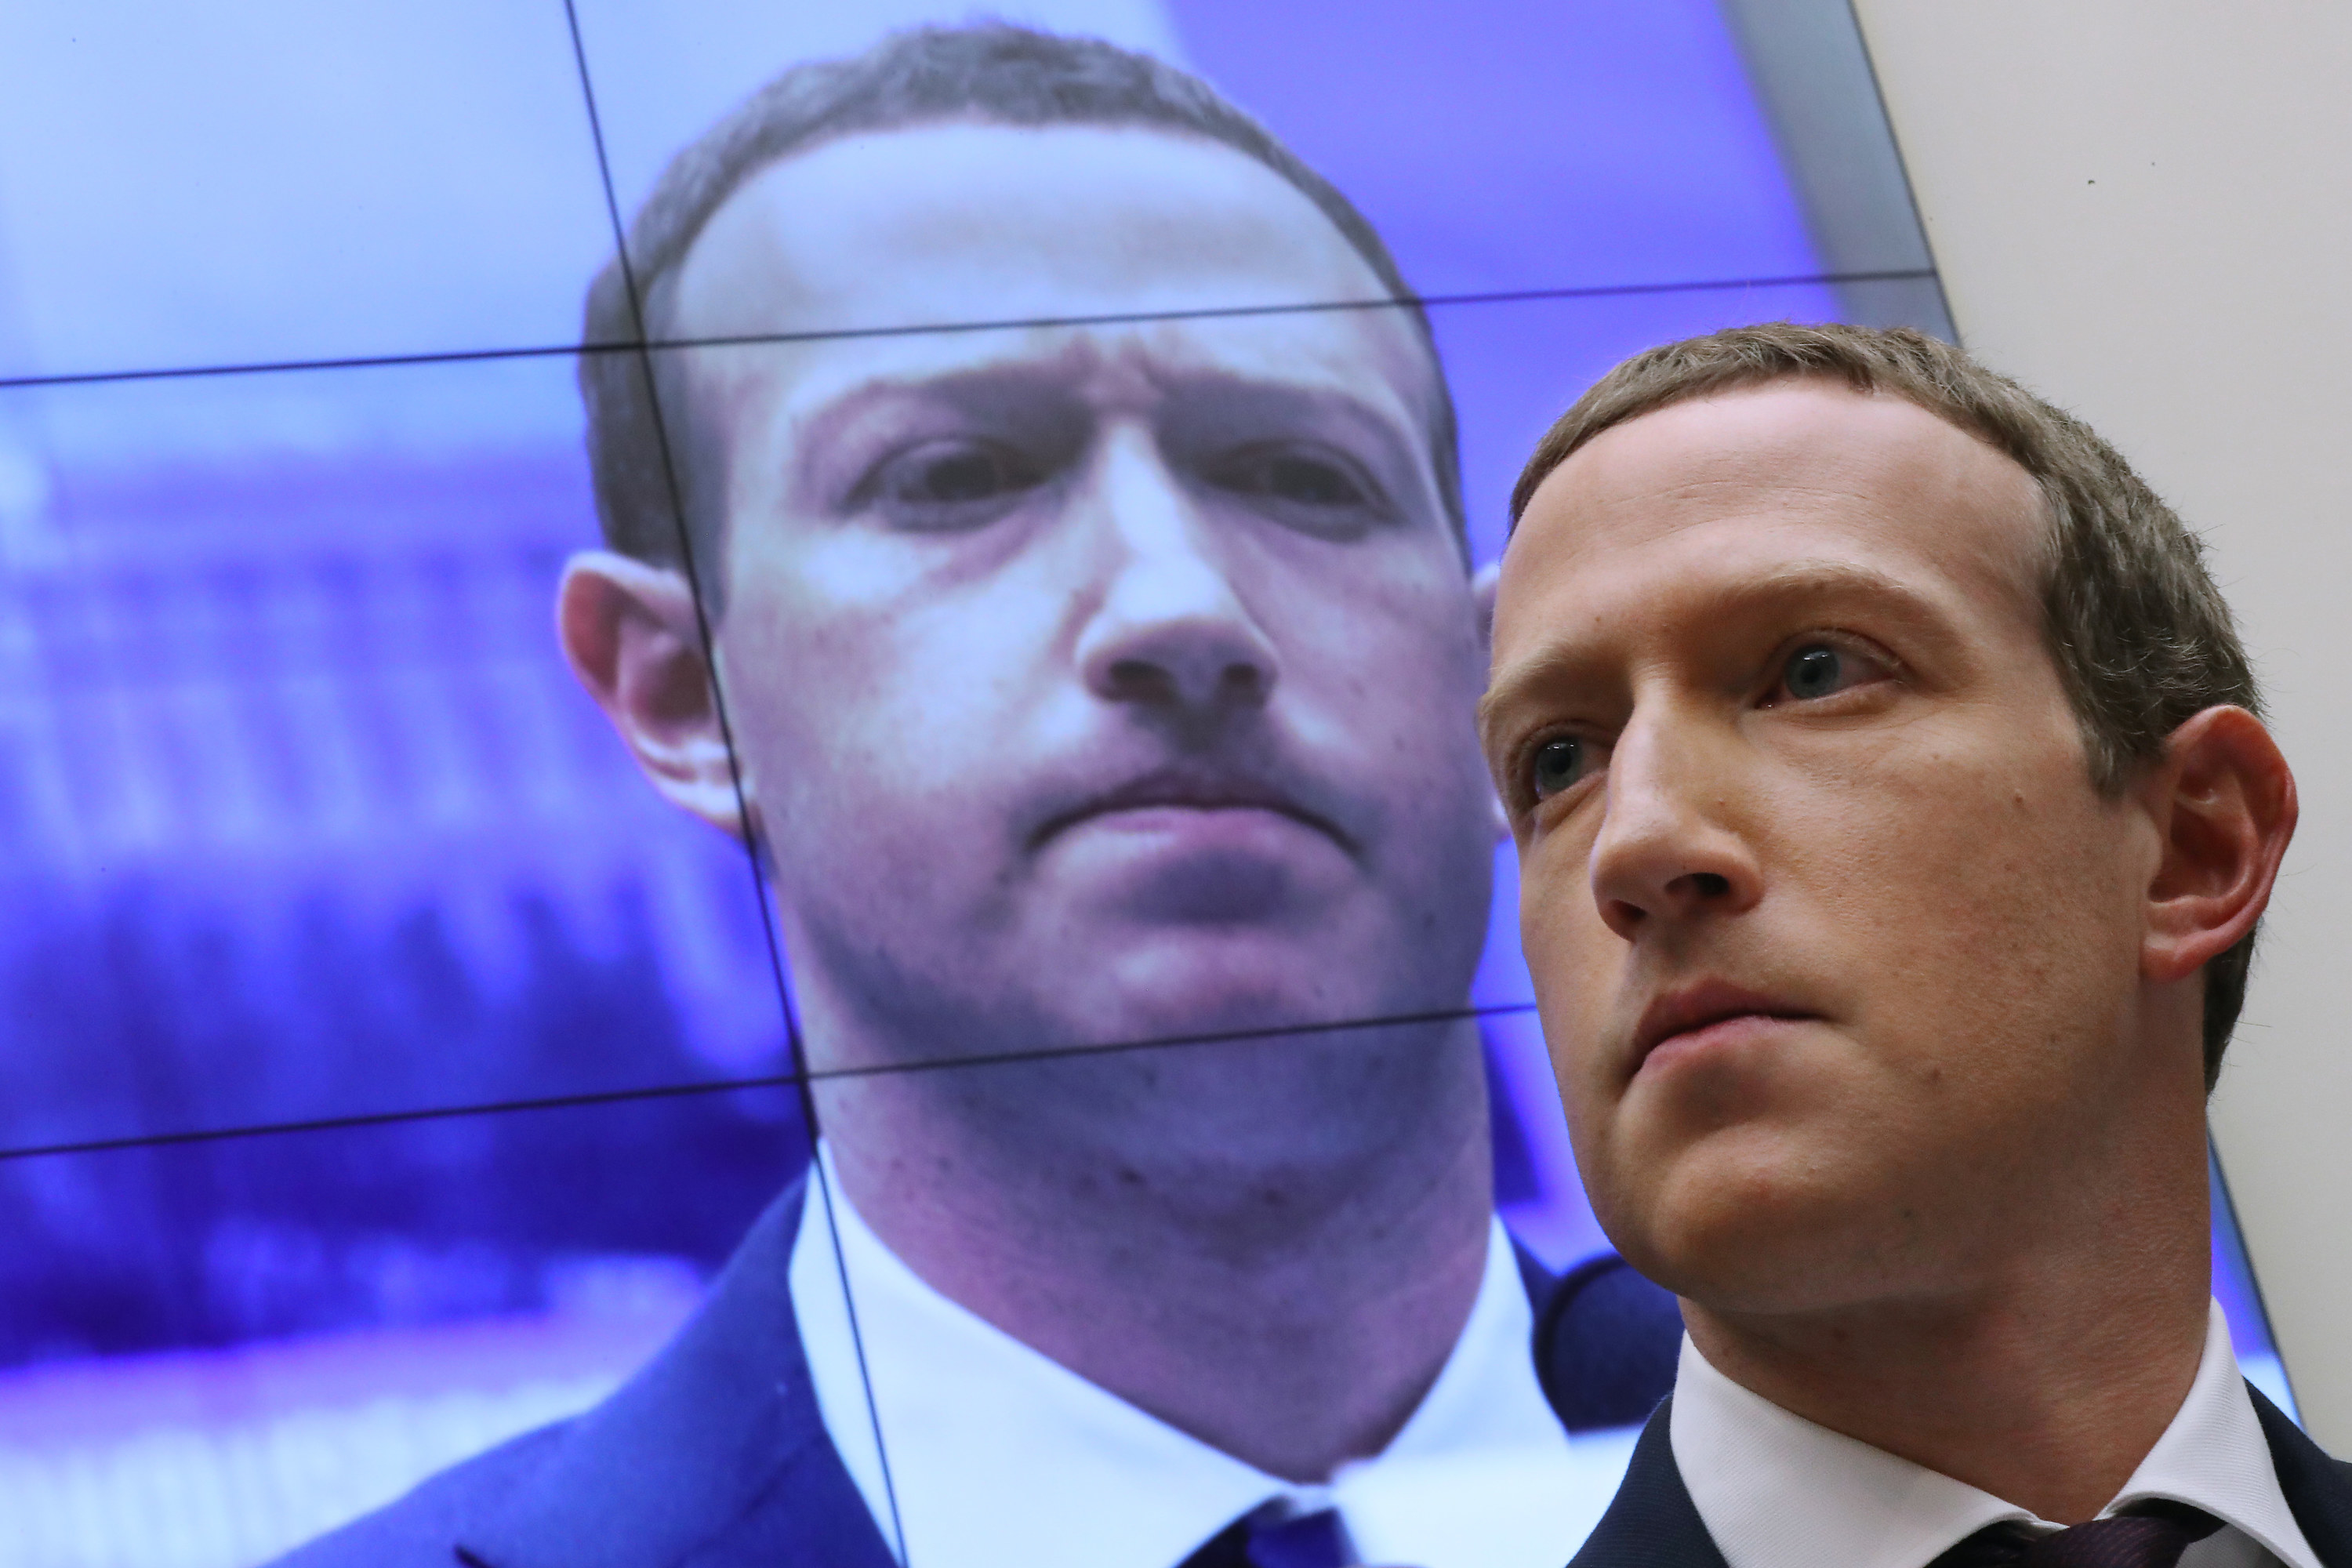 An image of Mark Zuckerberg is seen behind Mark Zuckerberg